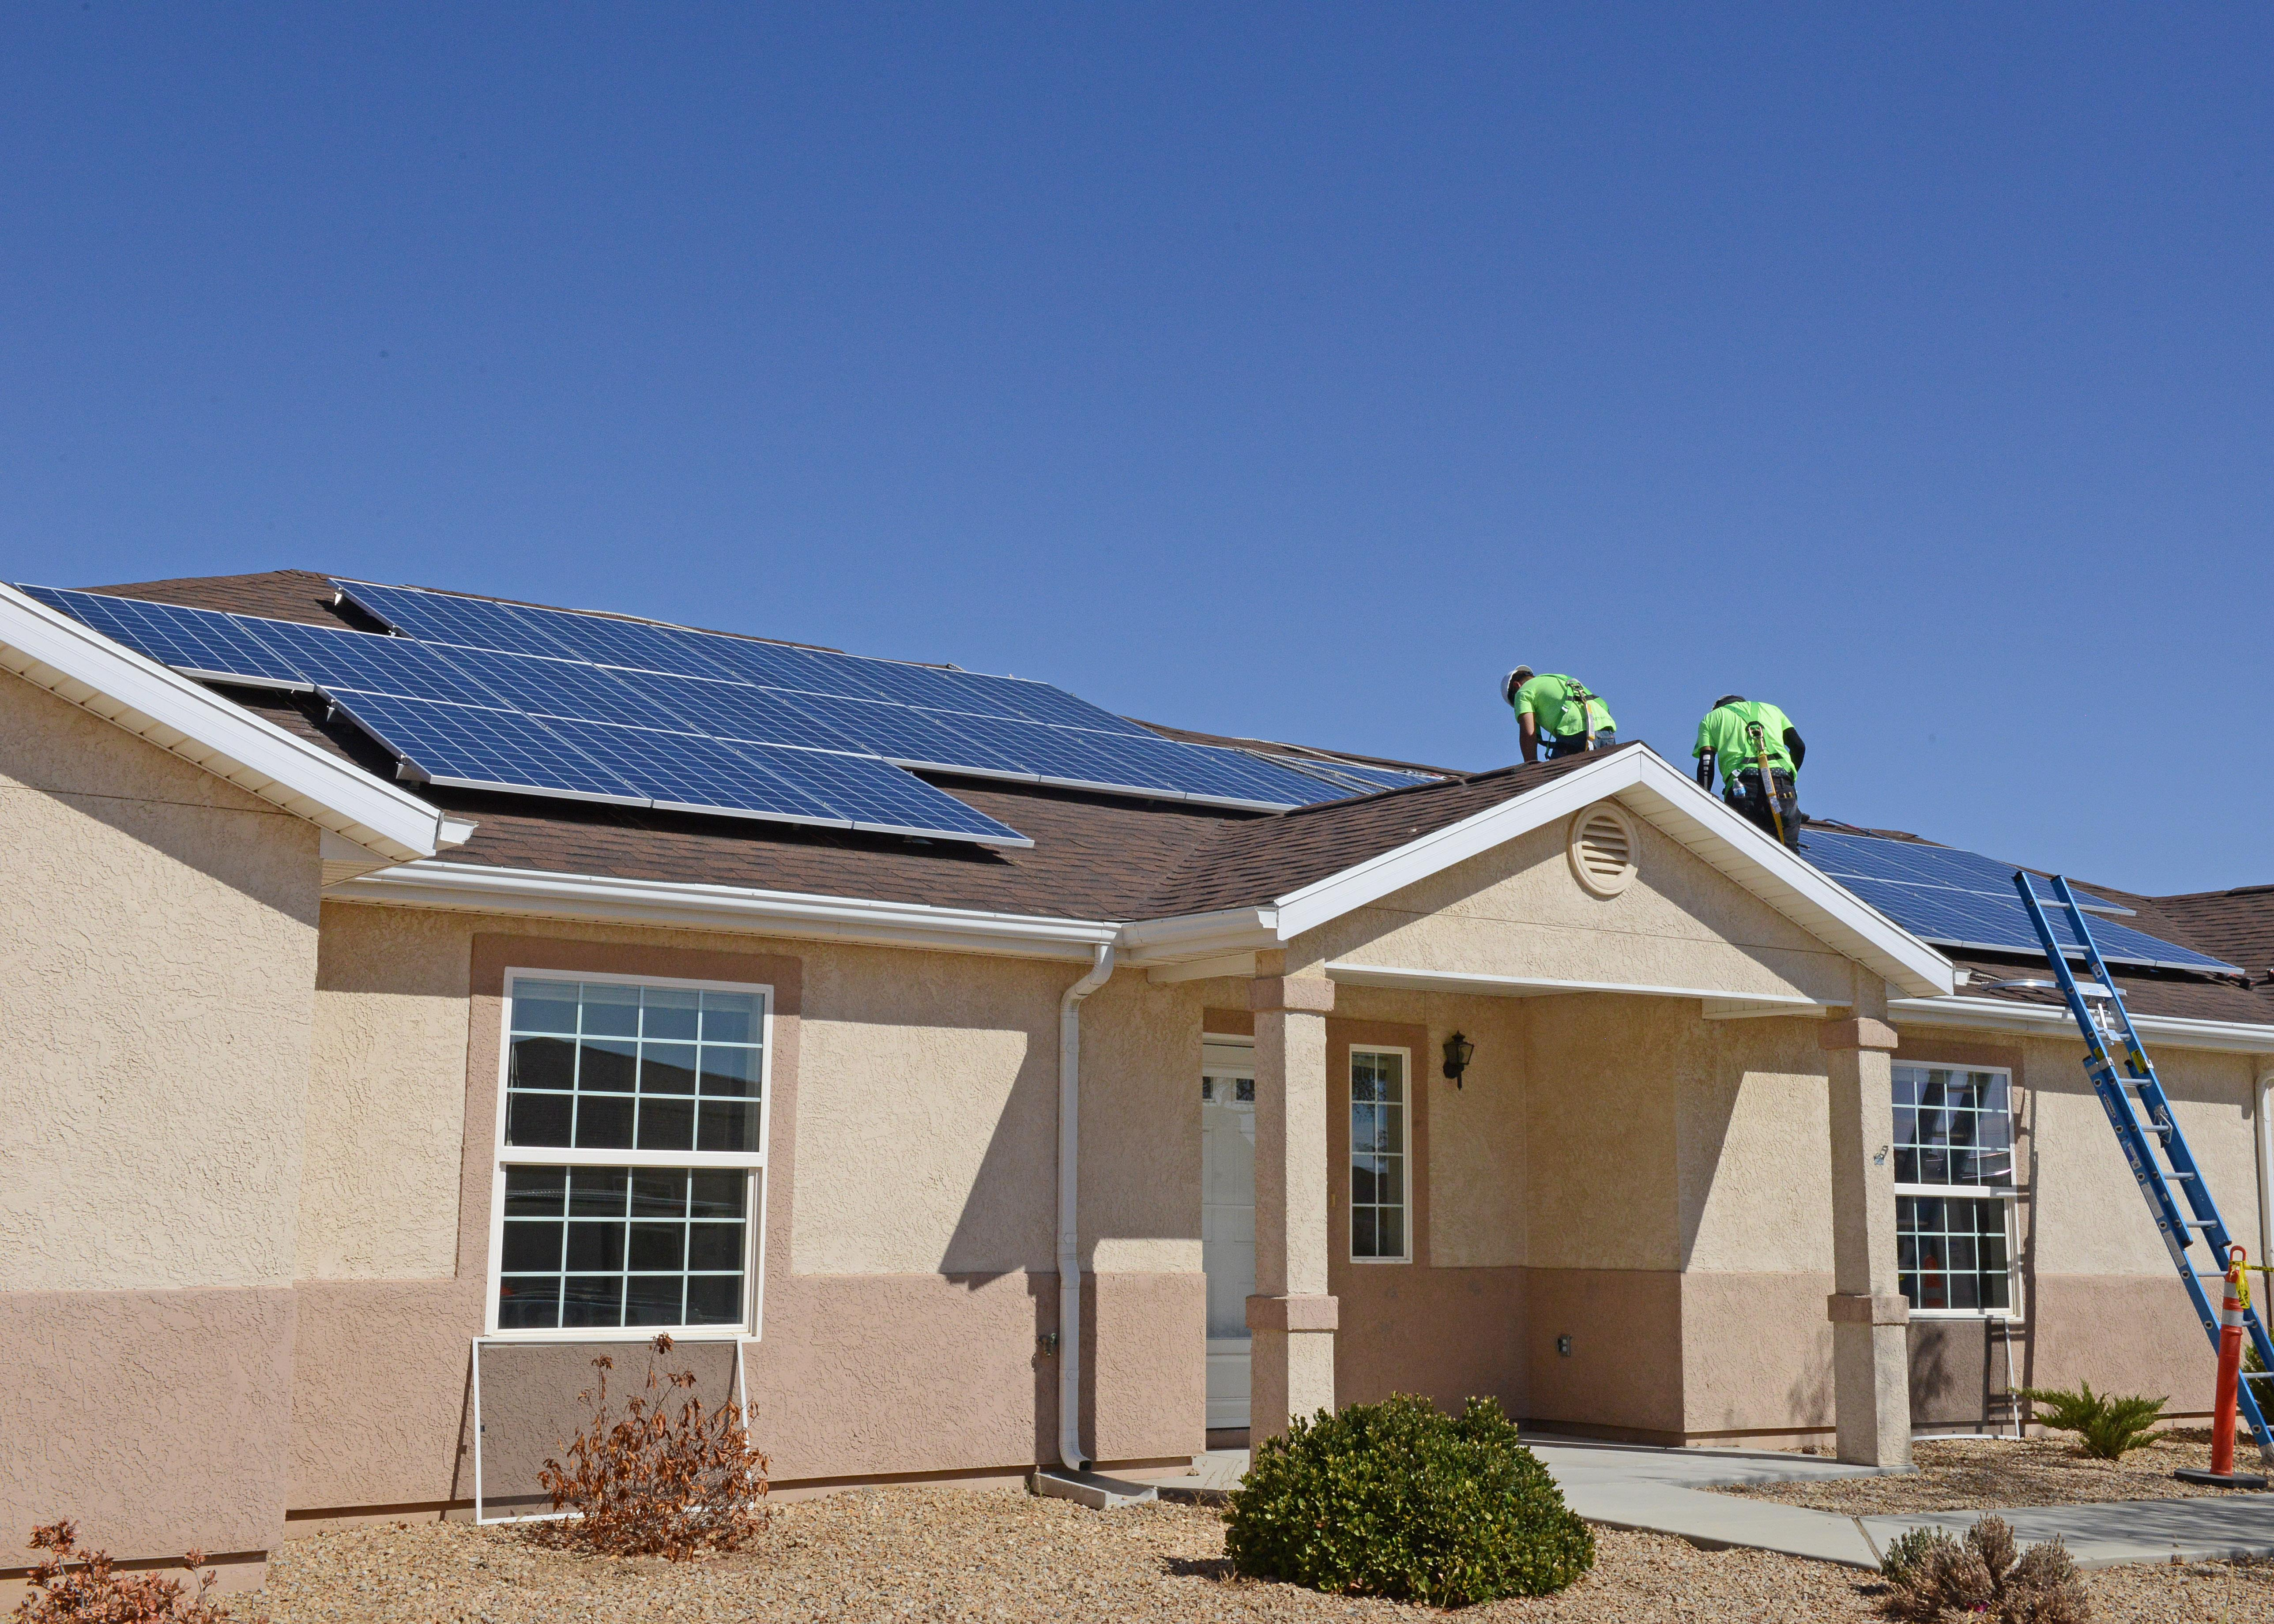 Military Homes On Edwards Air Force Base Get Solar Power